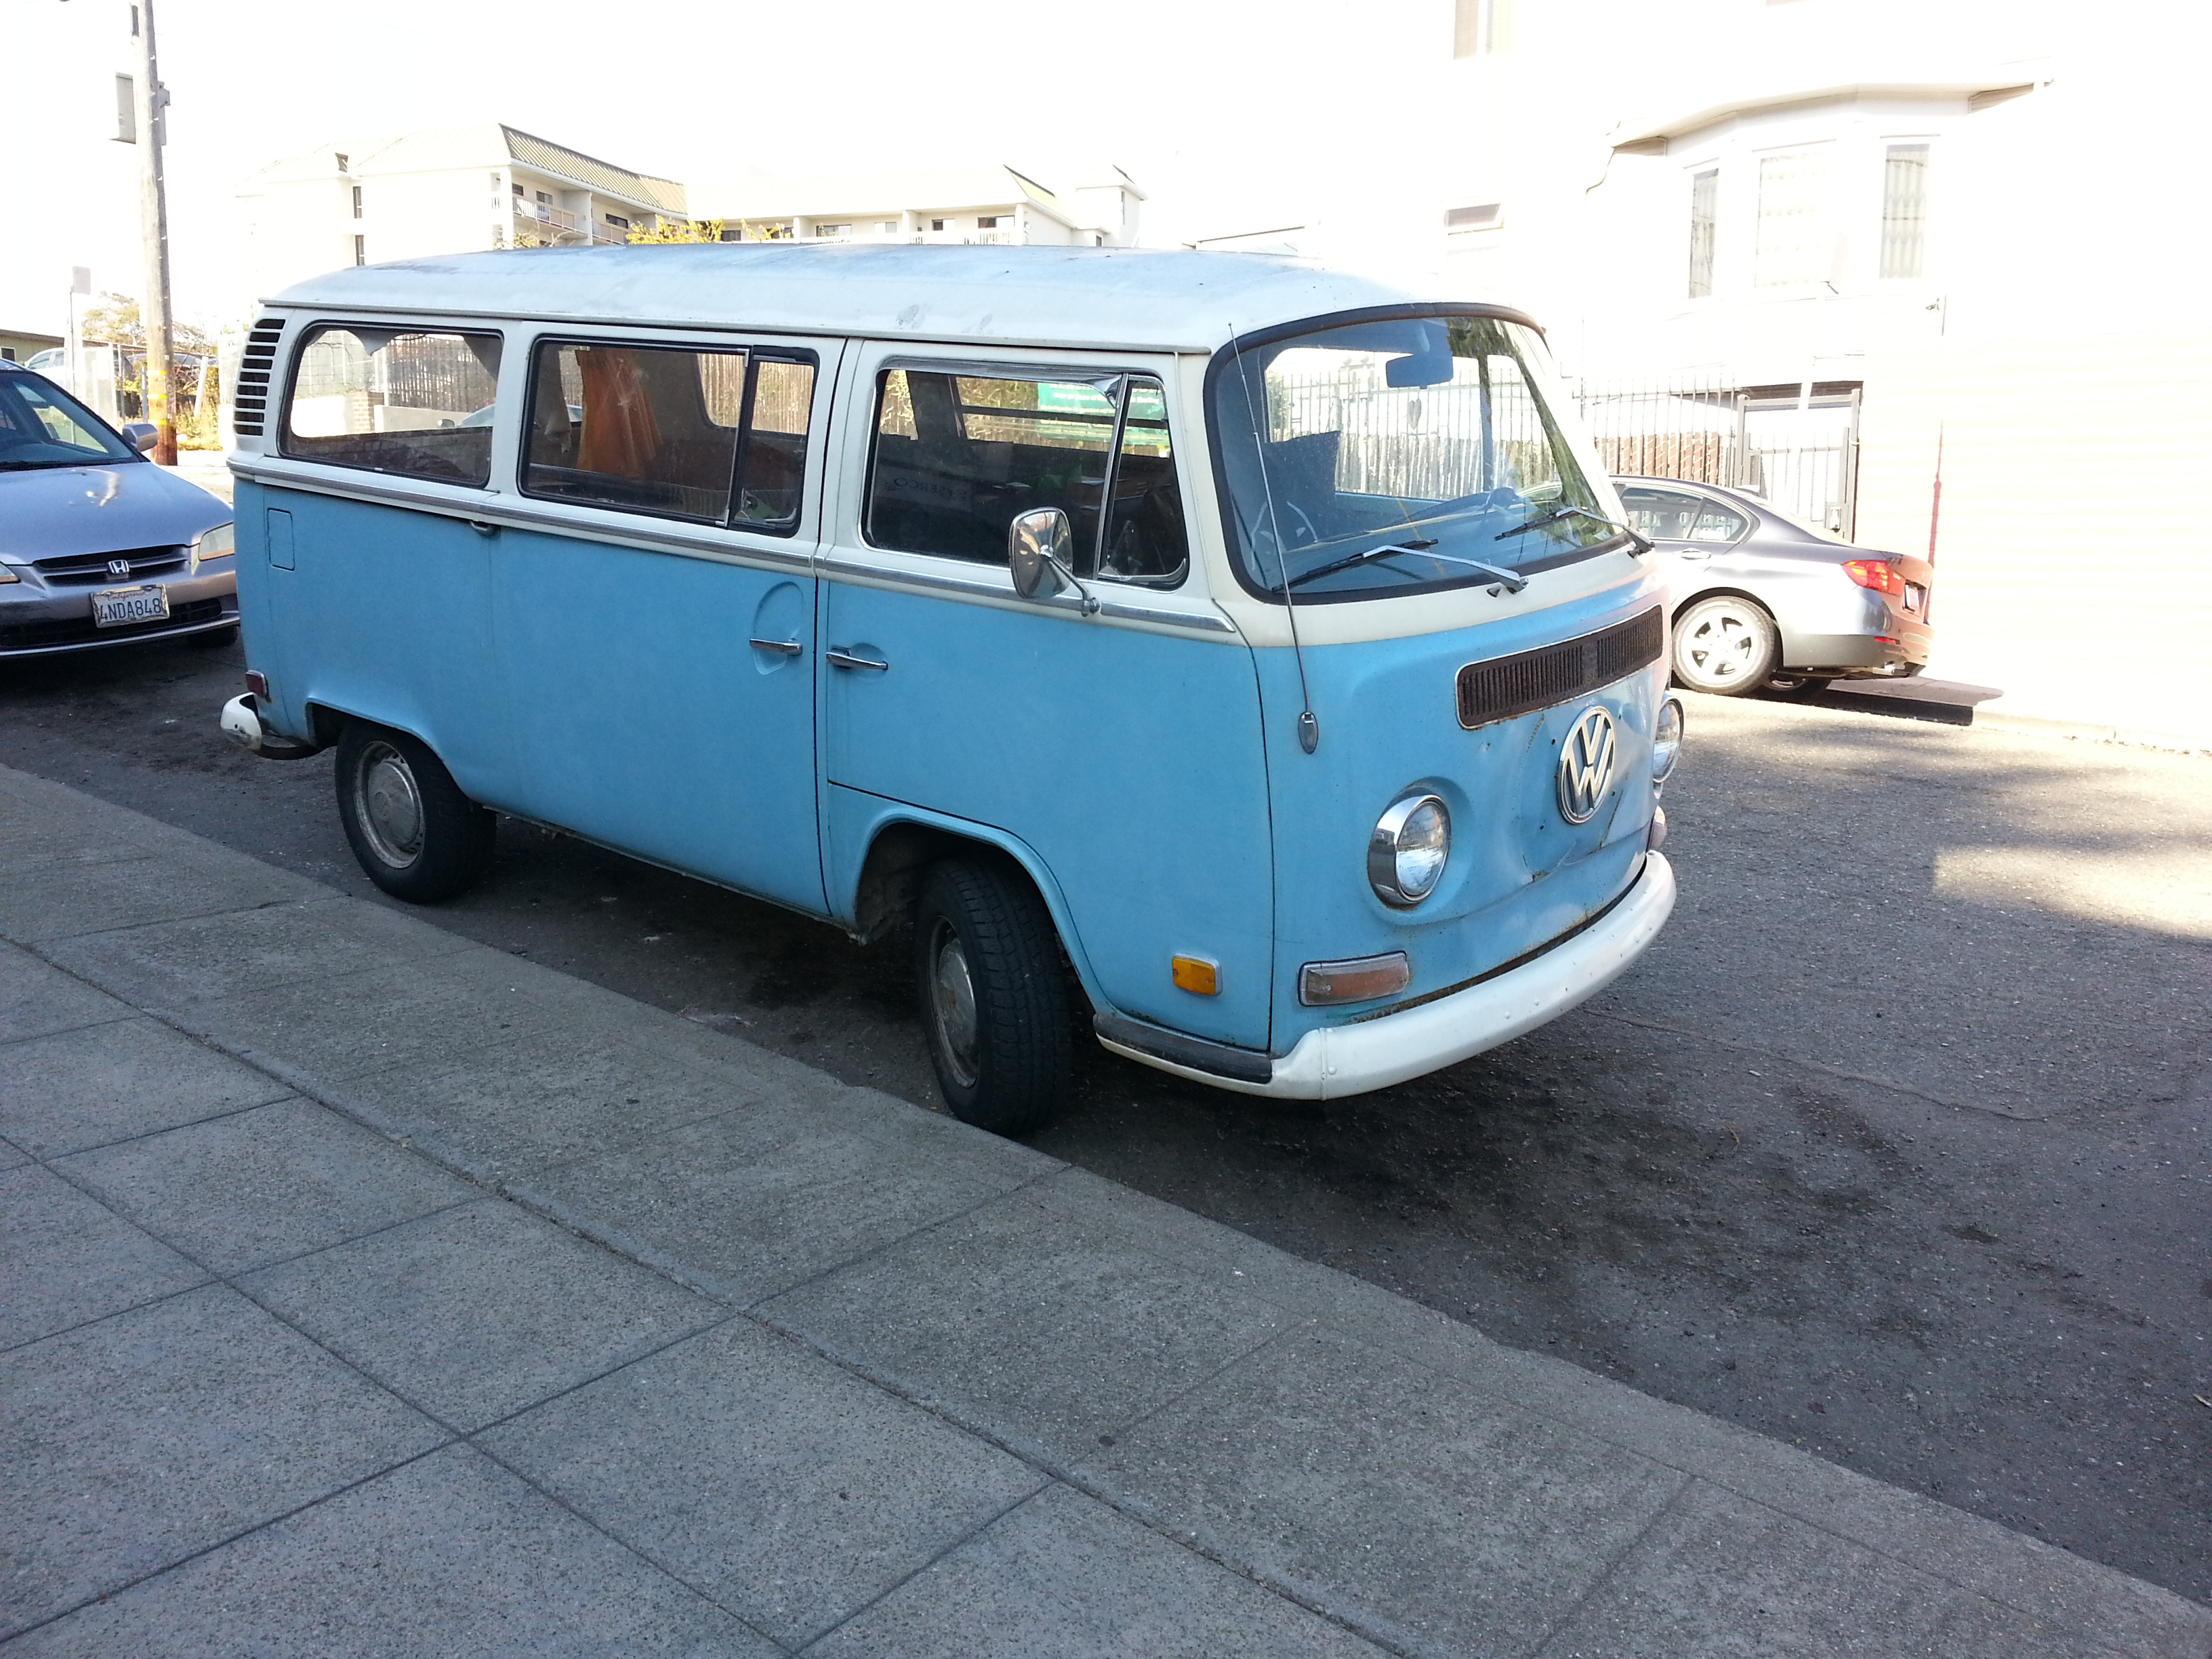 volkswagen mobile for events photo within is vintage bus oakland california booths a wheels we corporate das weddings on available are in based pin healdsburg booth